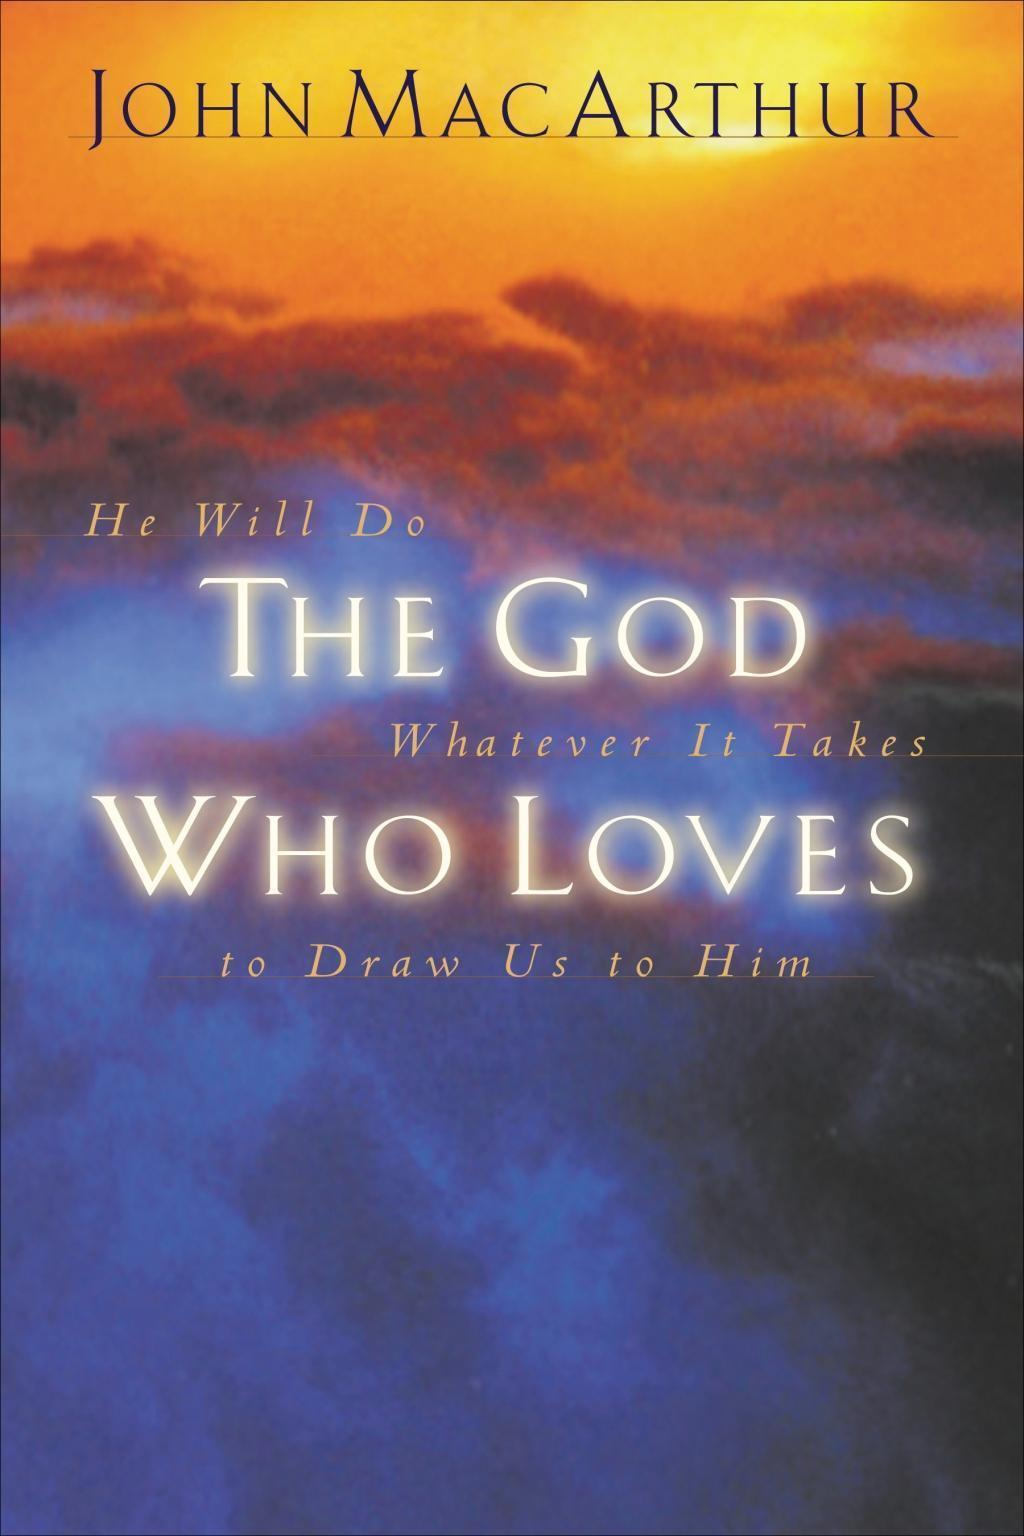 The God Who Loves